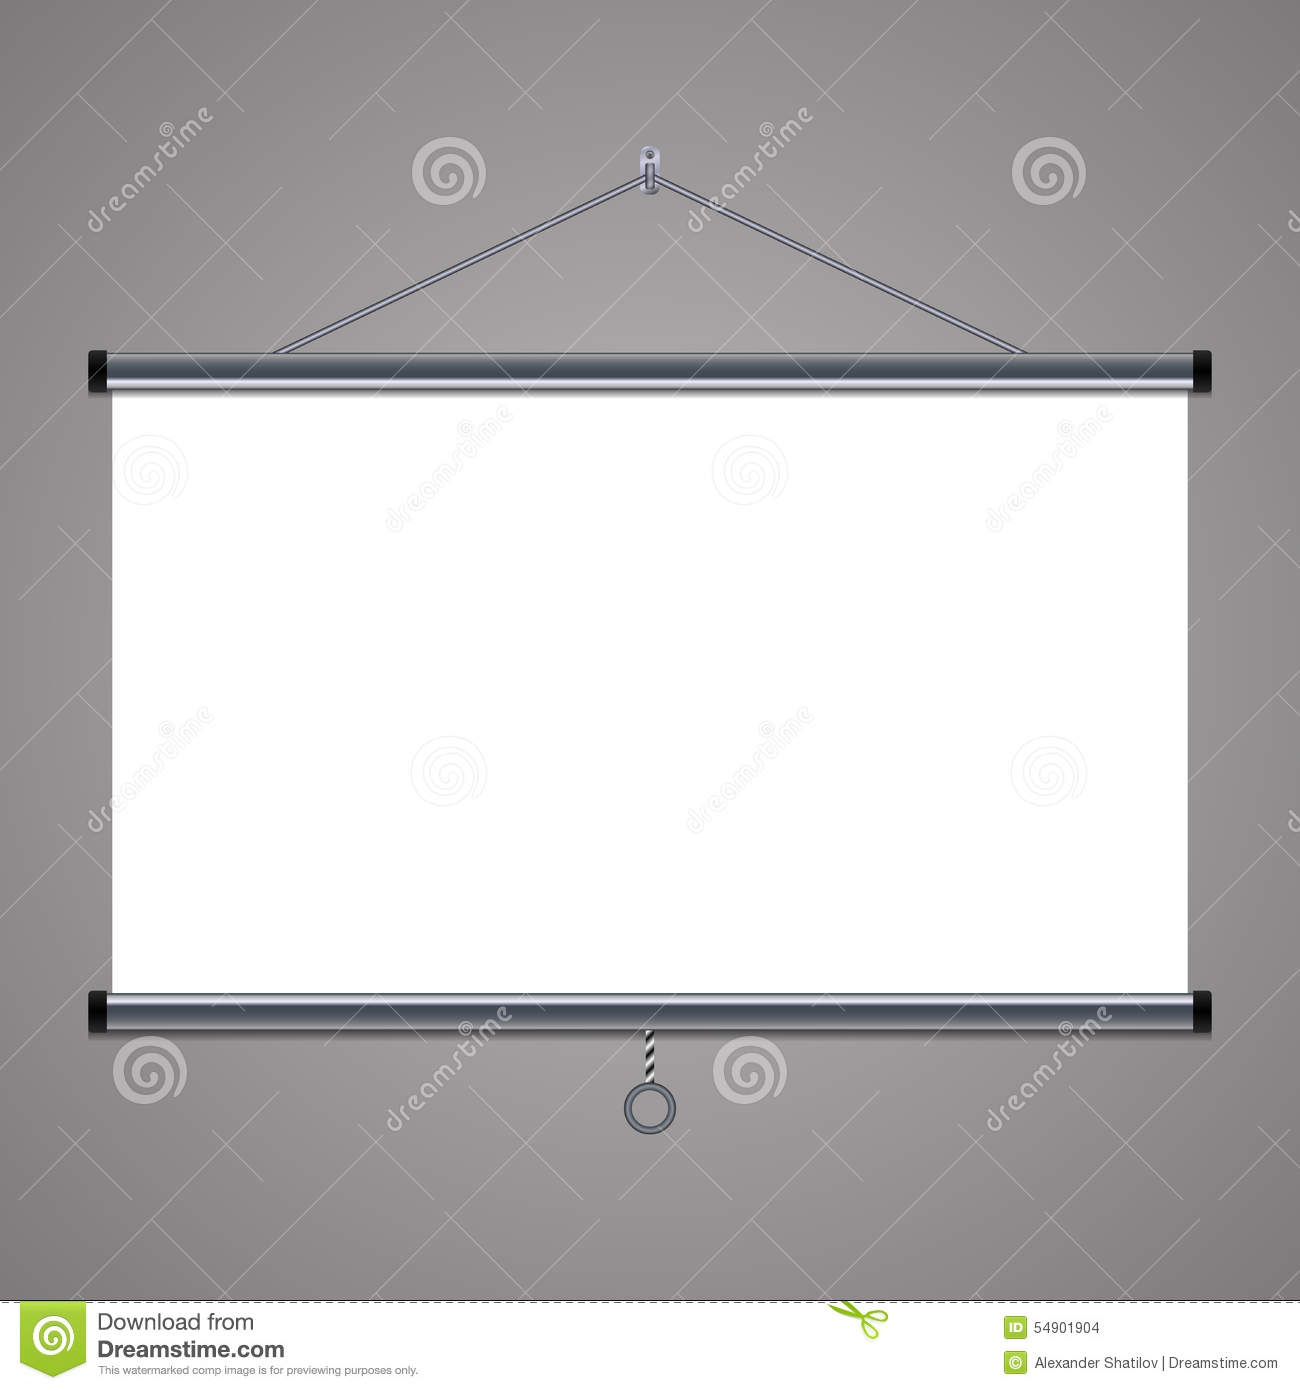 Projection Screen To Showcase Your Projects, 16x9 Aspect Ratio Stock ...